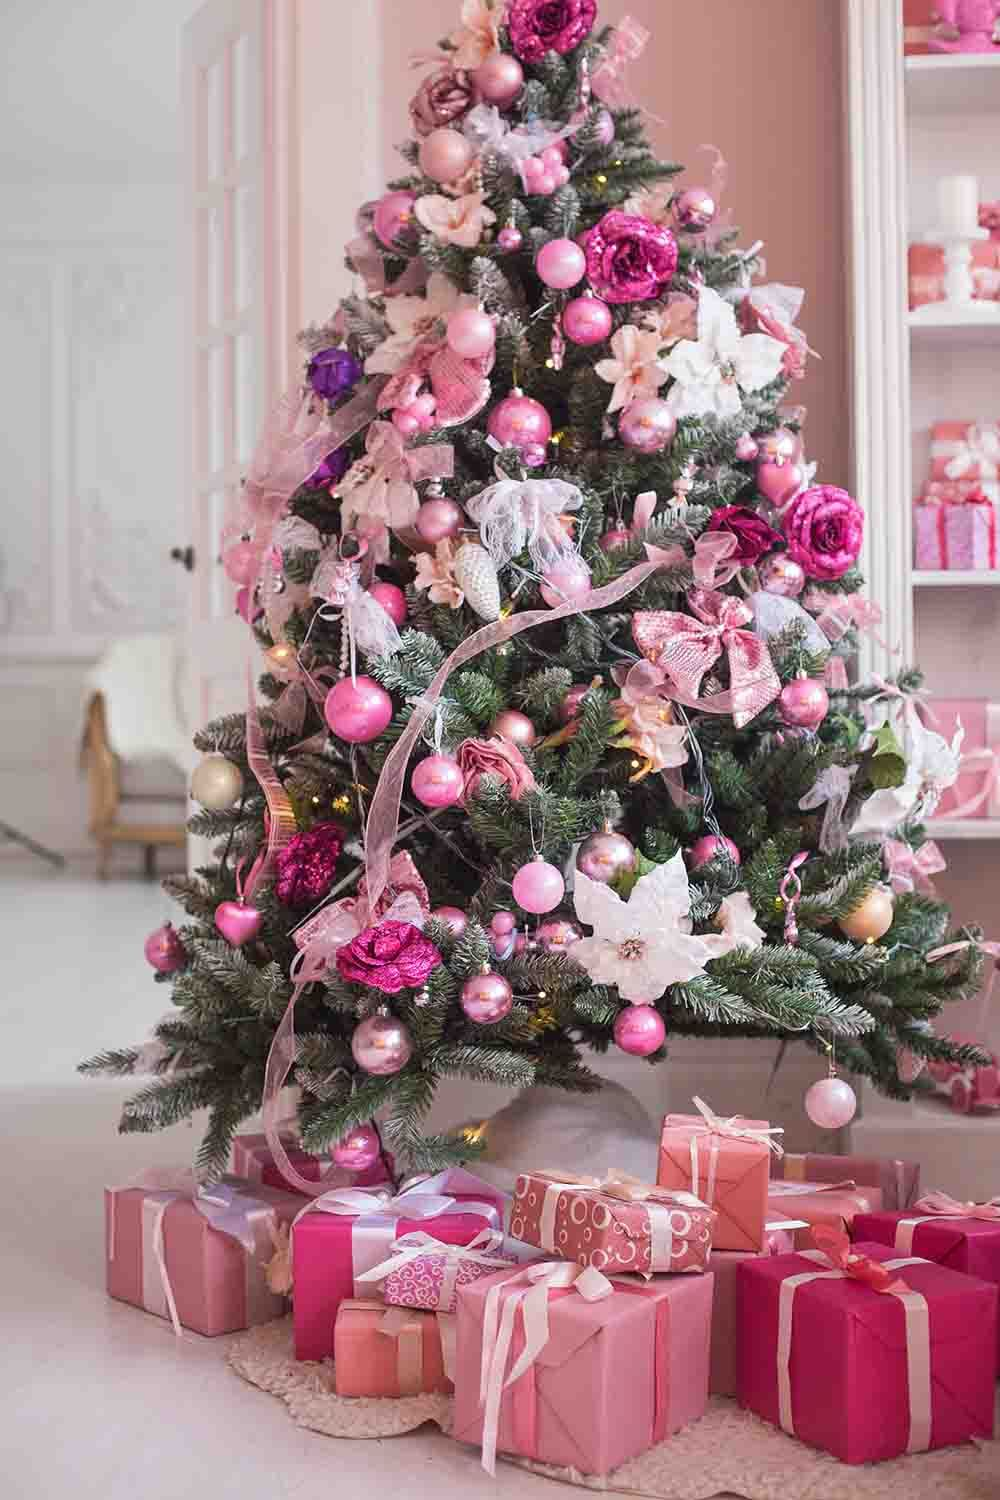 Pink Balls On Christmas Tree Holiday Photography Backdrop